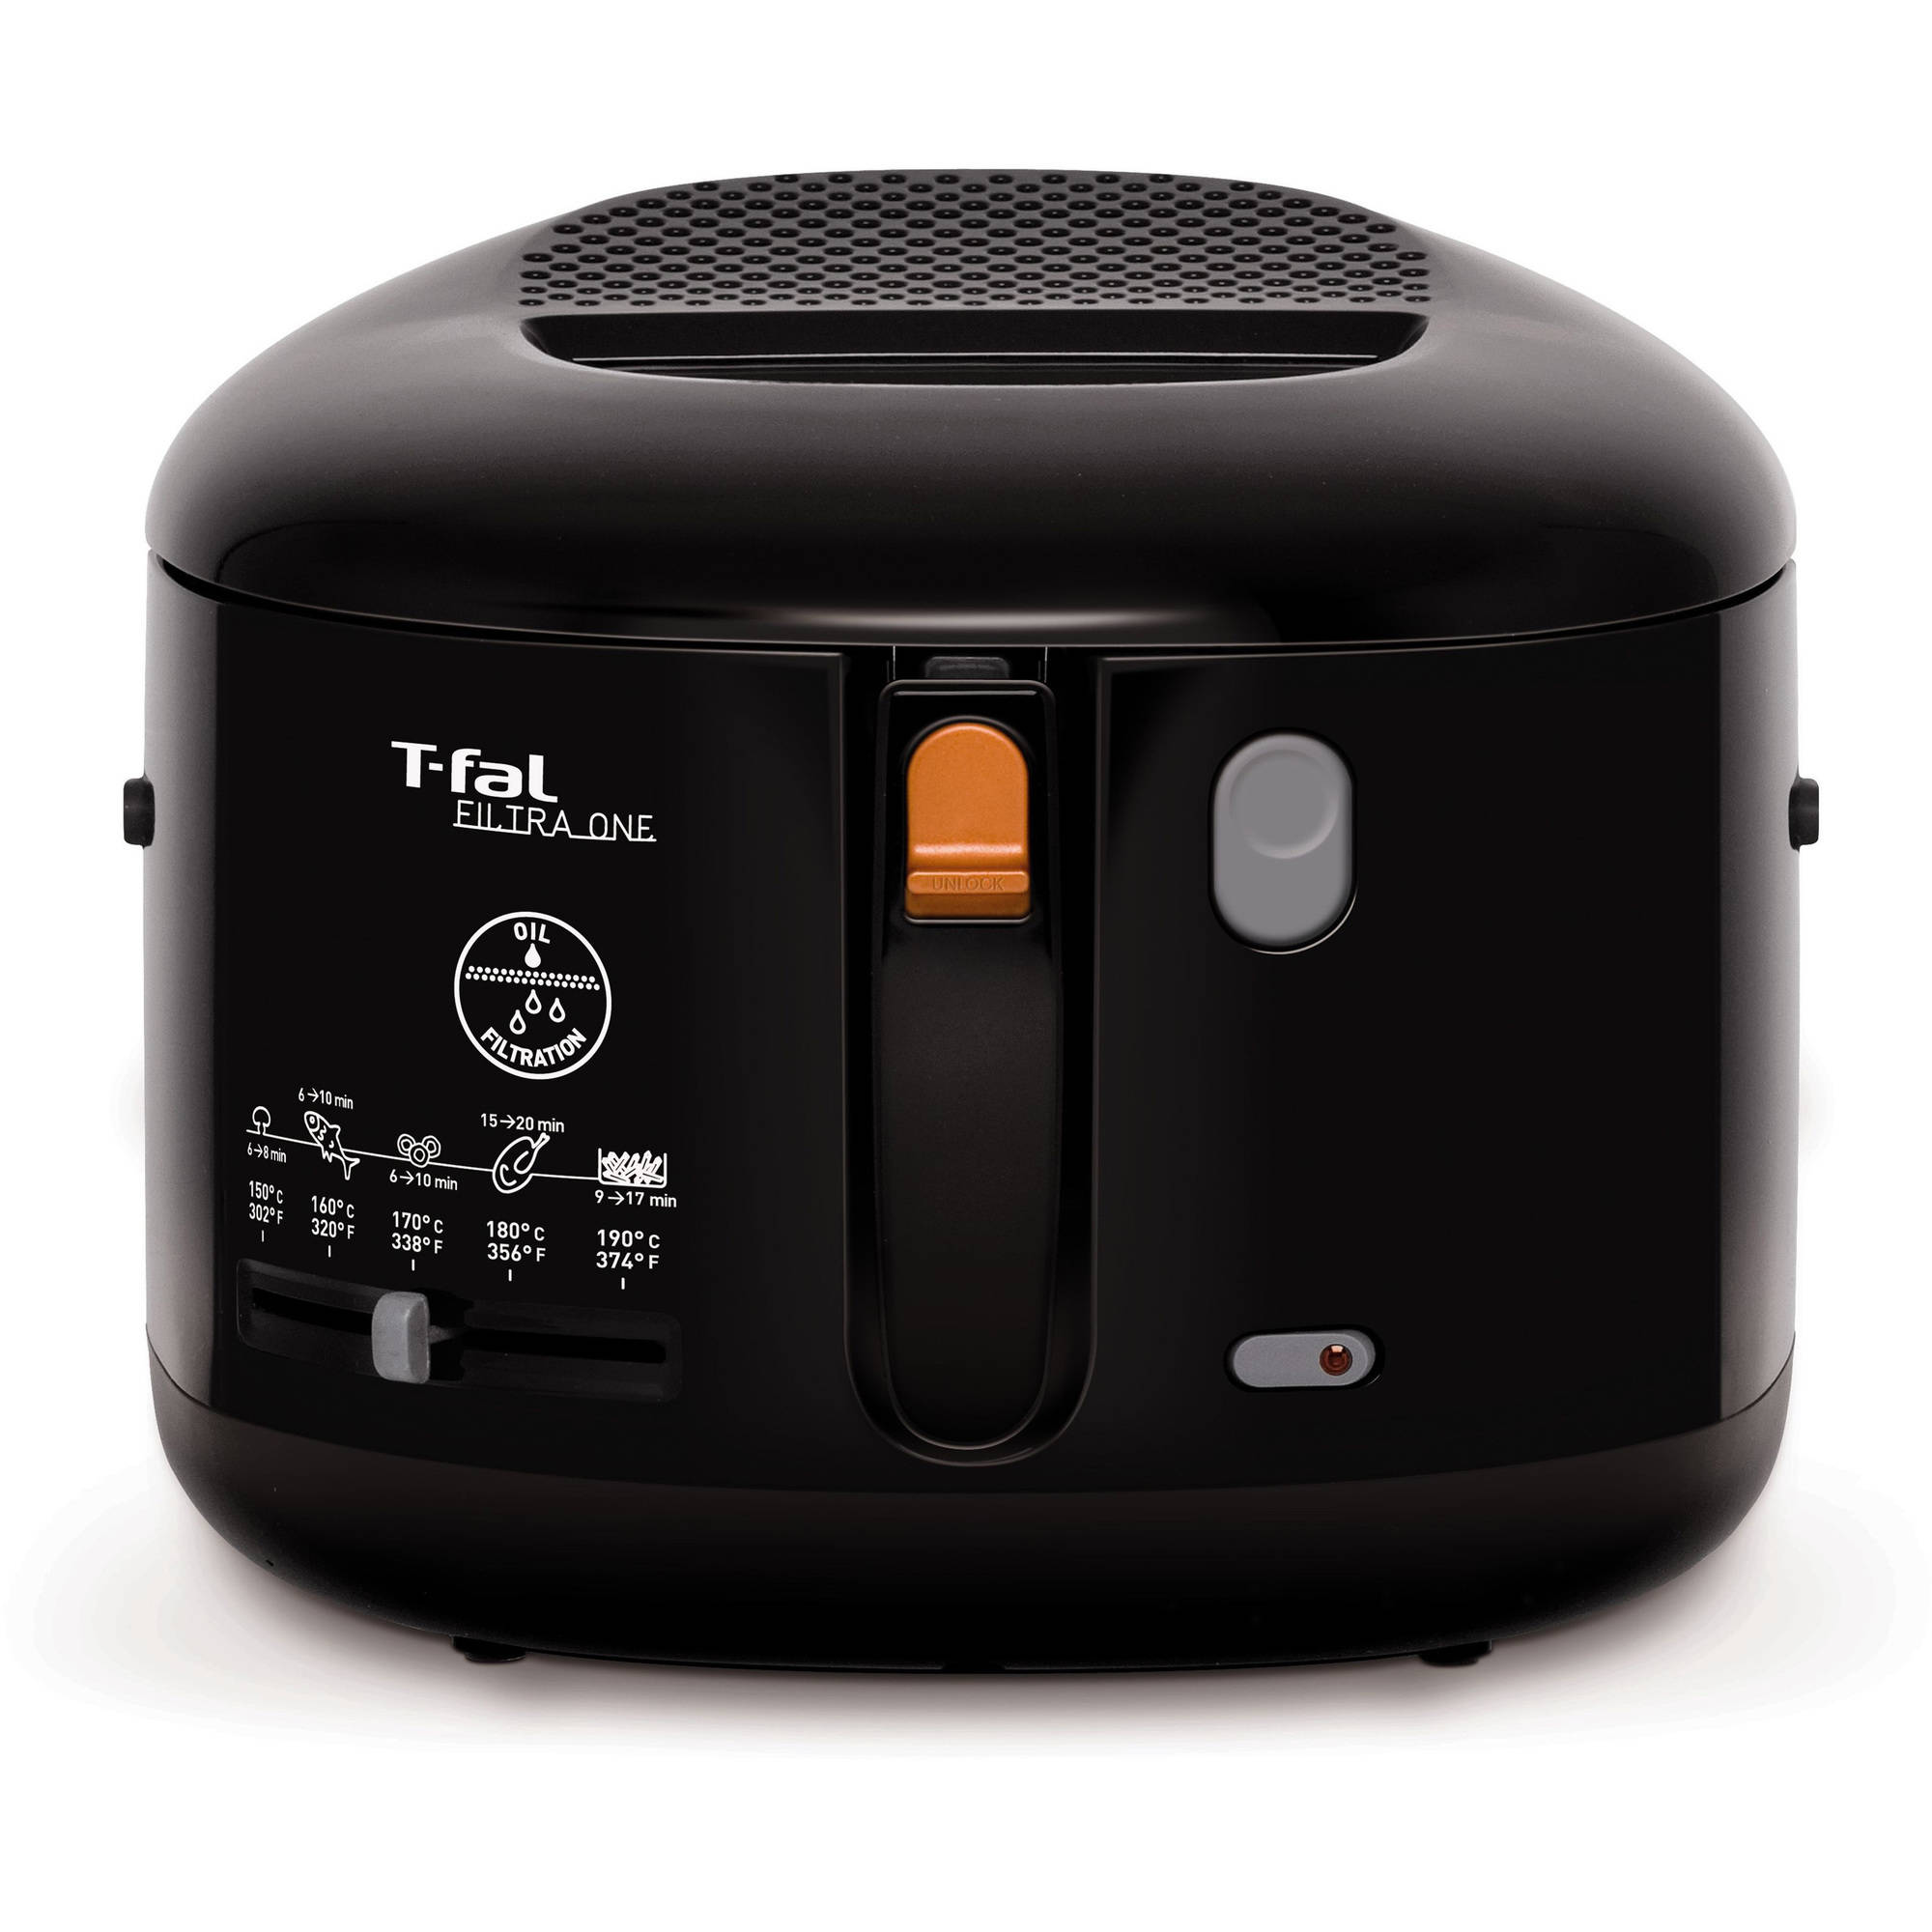 T-fal Filtra One 2.1L Cool Touch Deep Fryer